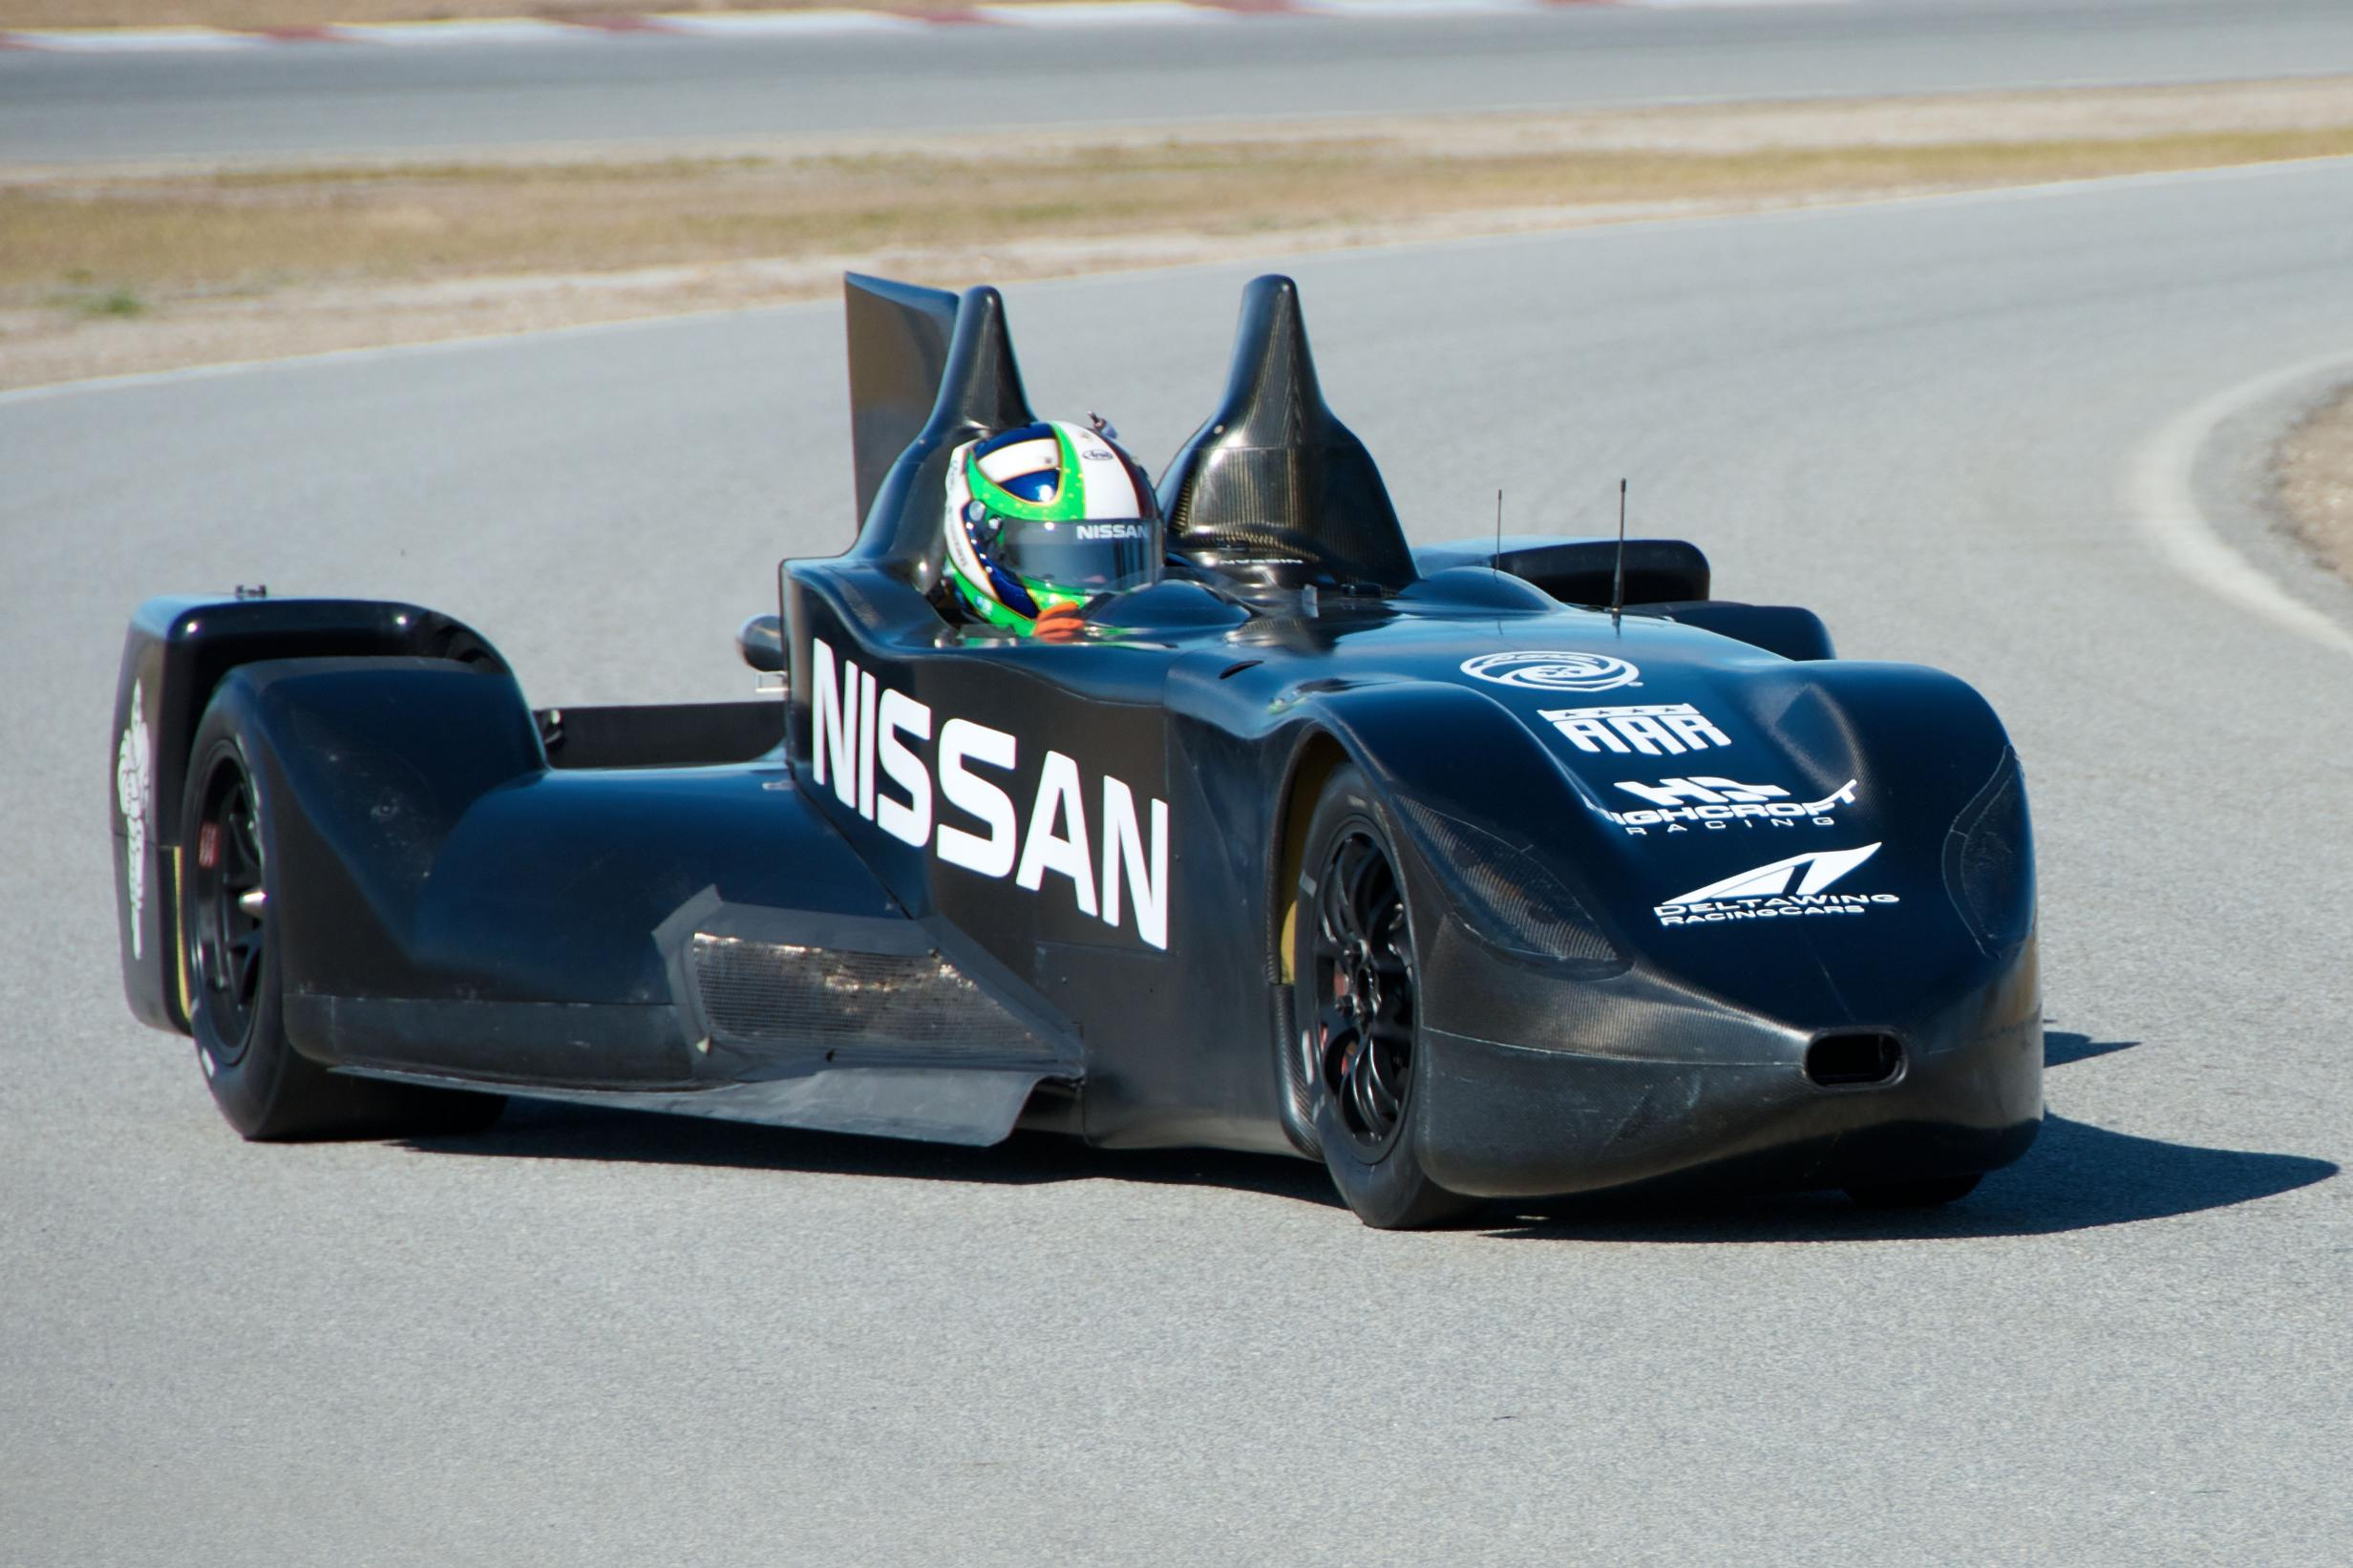 Nissan DeltaWing Batmobile Front Driving